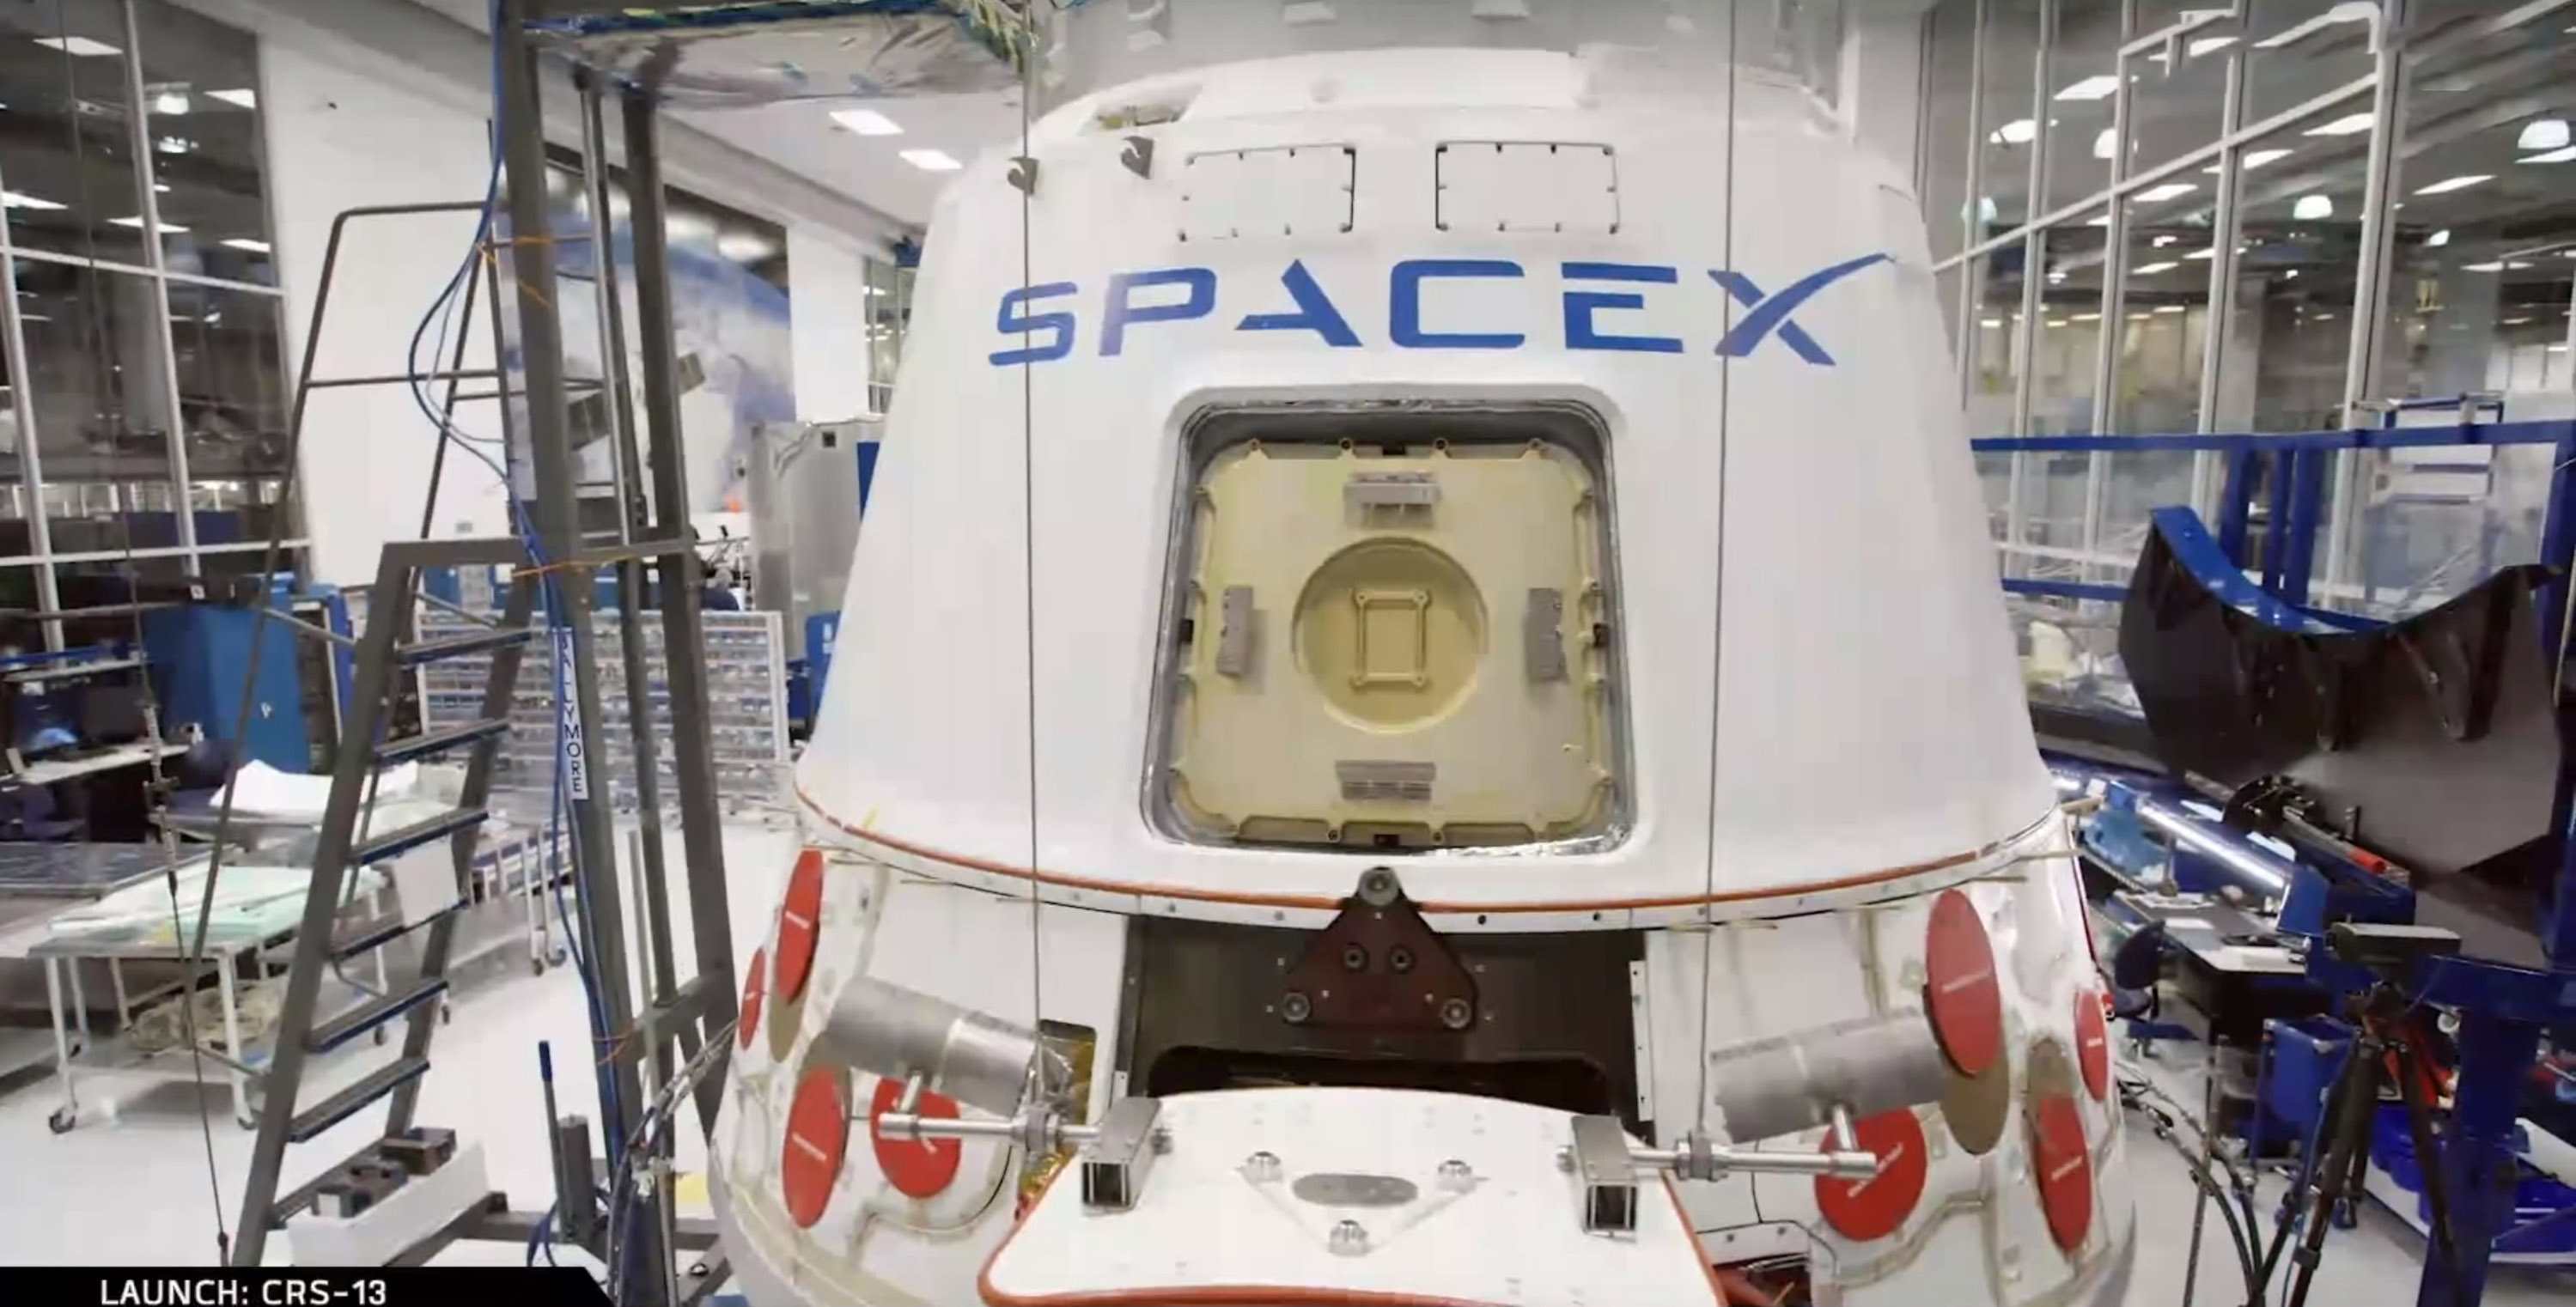 Dragon processing 2 (SpaceX)